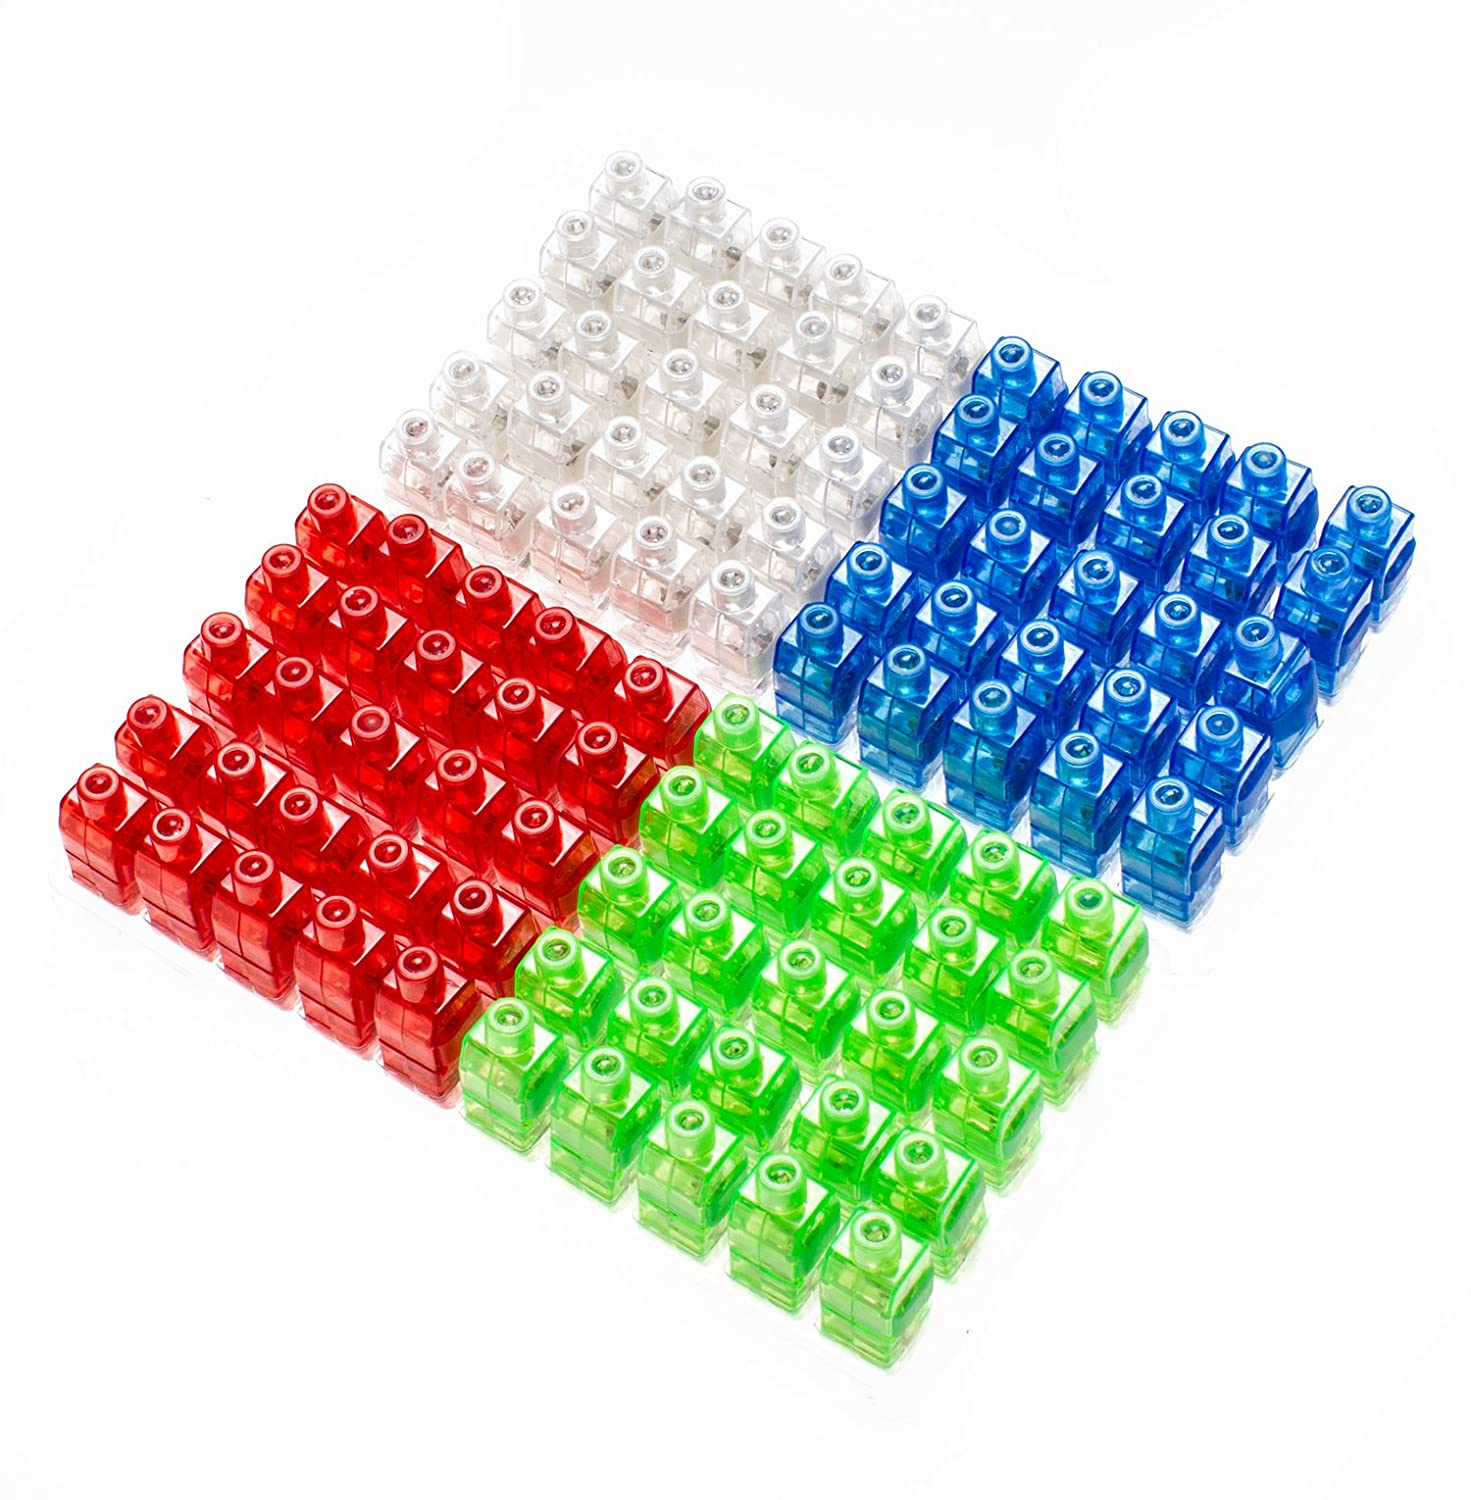 Etekcity LED Finger Lights 100 Pack Bright Party Favors Party Supplies for Holiday Light up Toys Assorted Color